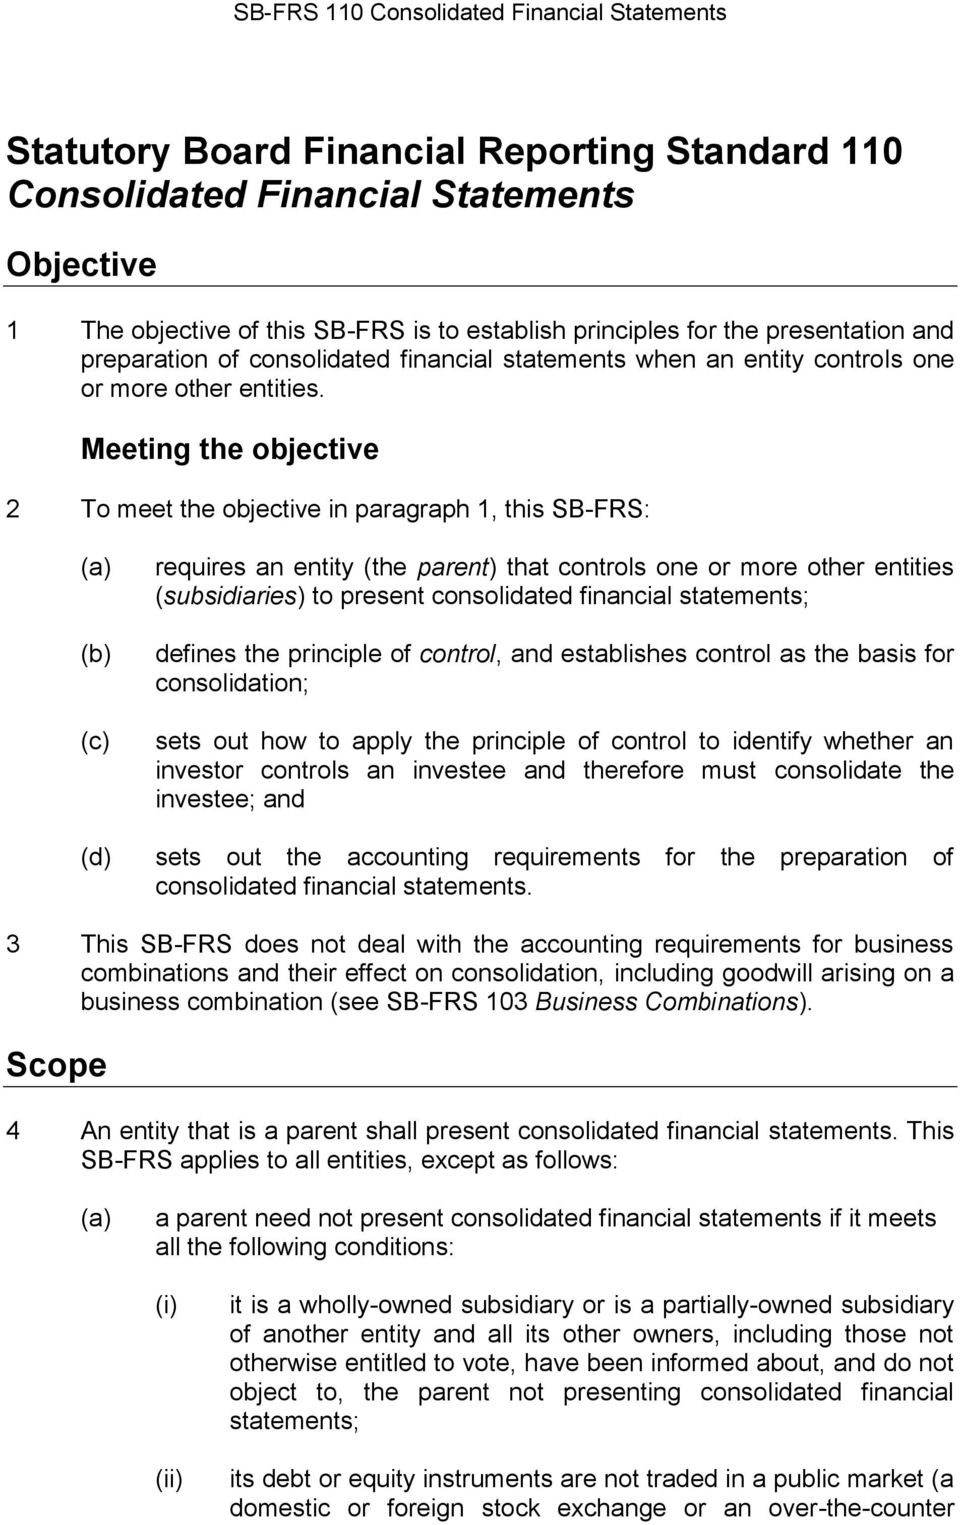 Meeting the objective 2 To meet the objective in paragraph 1, this SB-FRS: (c) (d) requires an entity (the parent) that controls one or more other entities (subsidiaries) to present consolidated